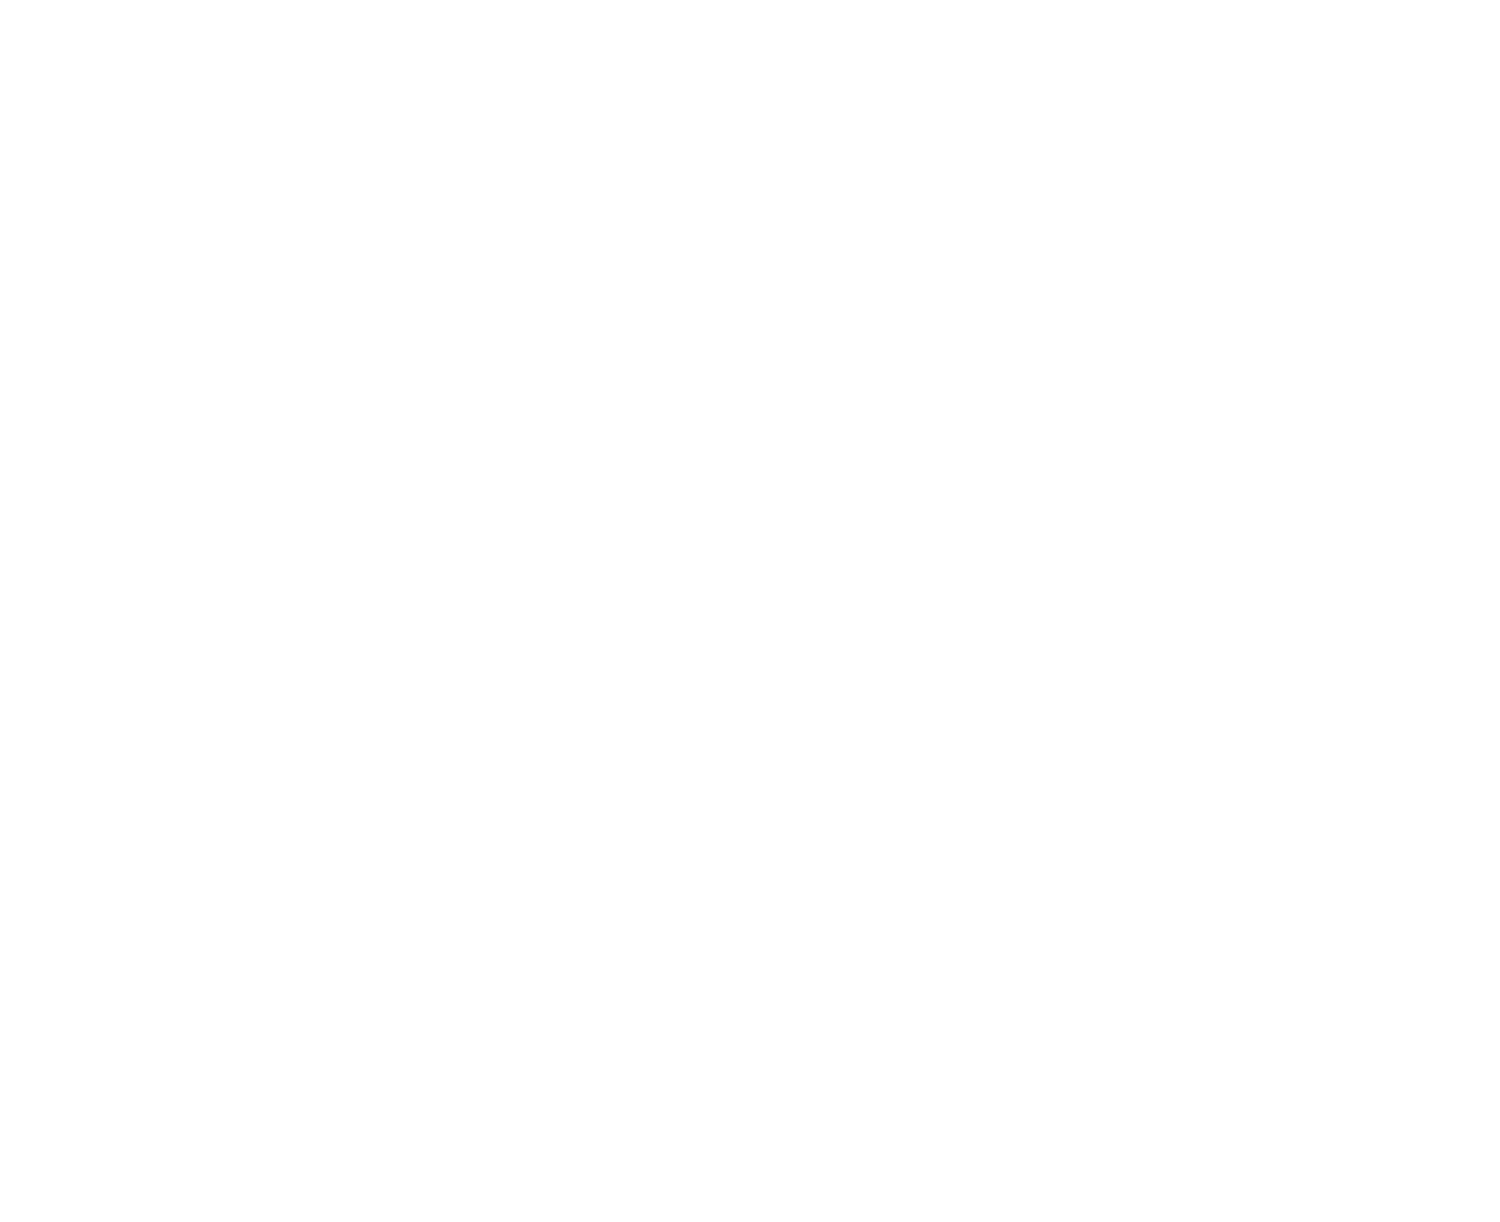 Eye Doctors in Olathe KS - Curts & Reed Optometry